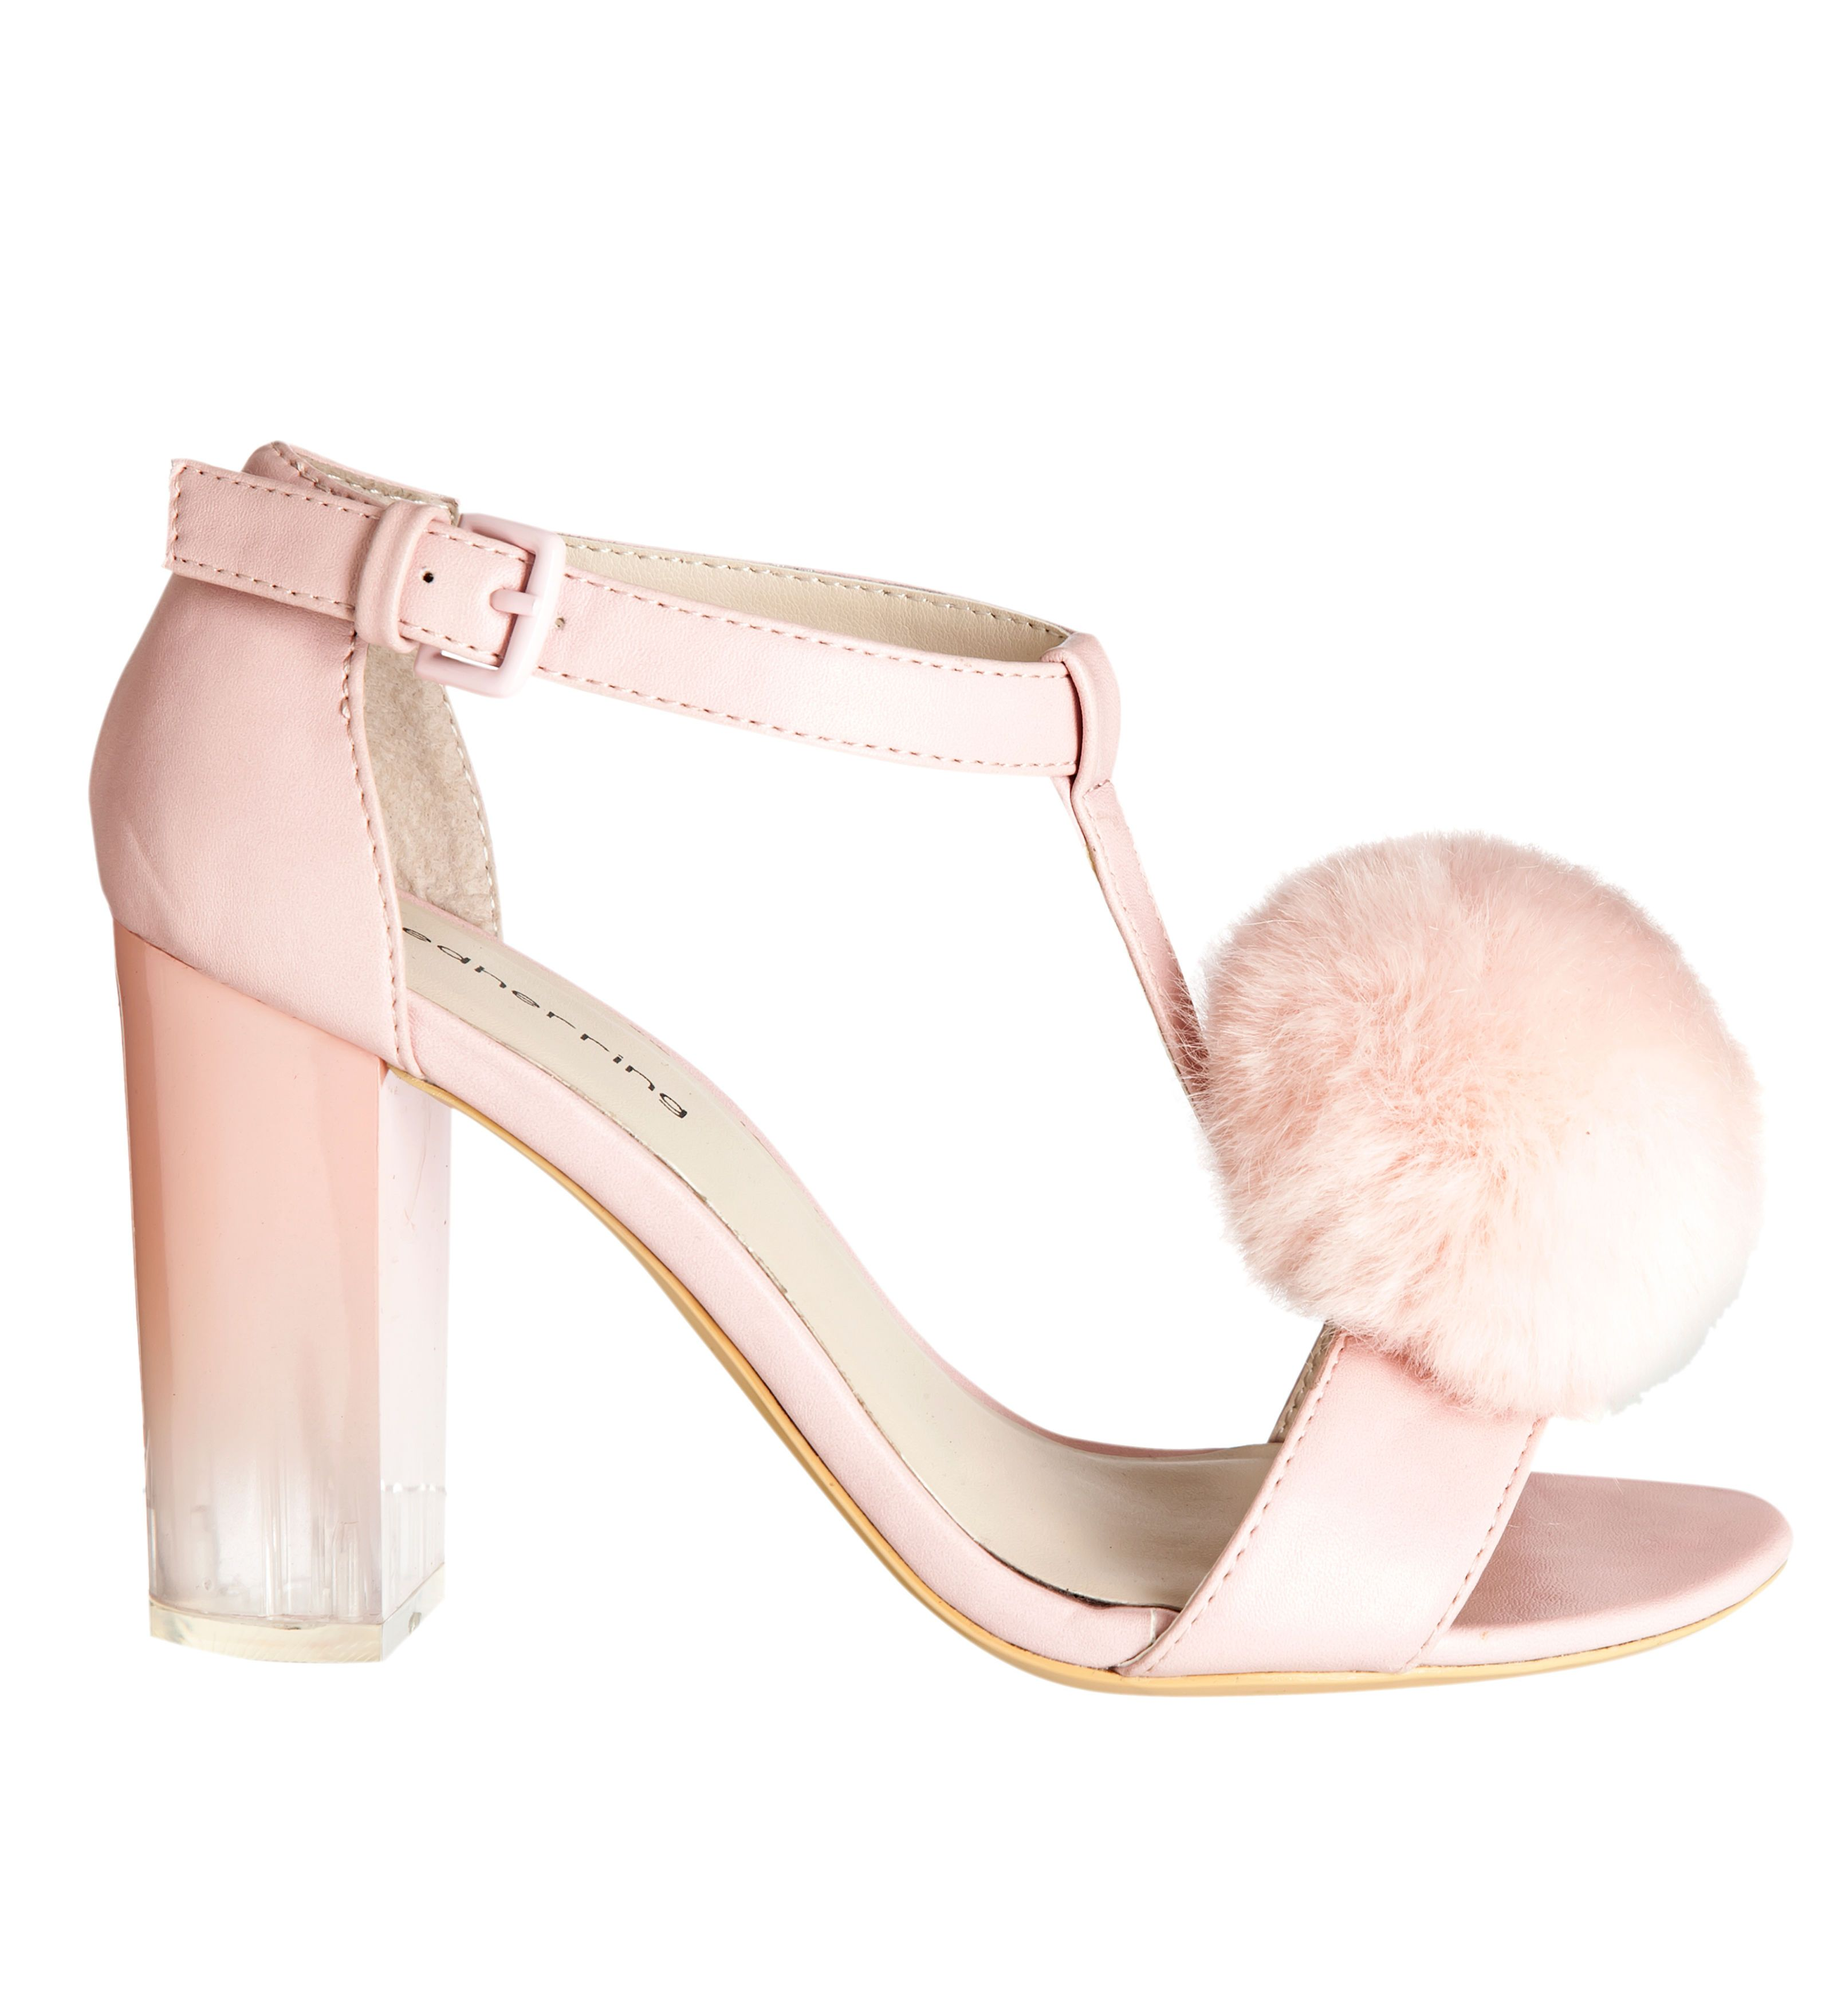 Shoes For In The Christmas Party Year Uk New Best And A3c4Lqj5R